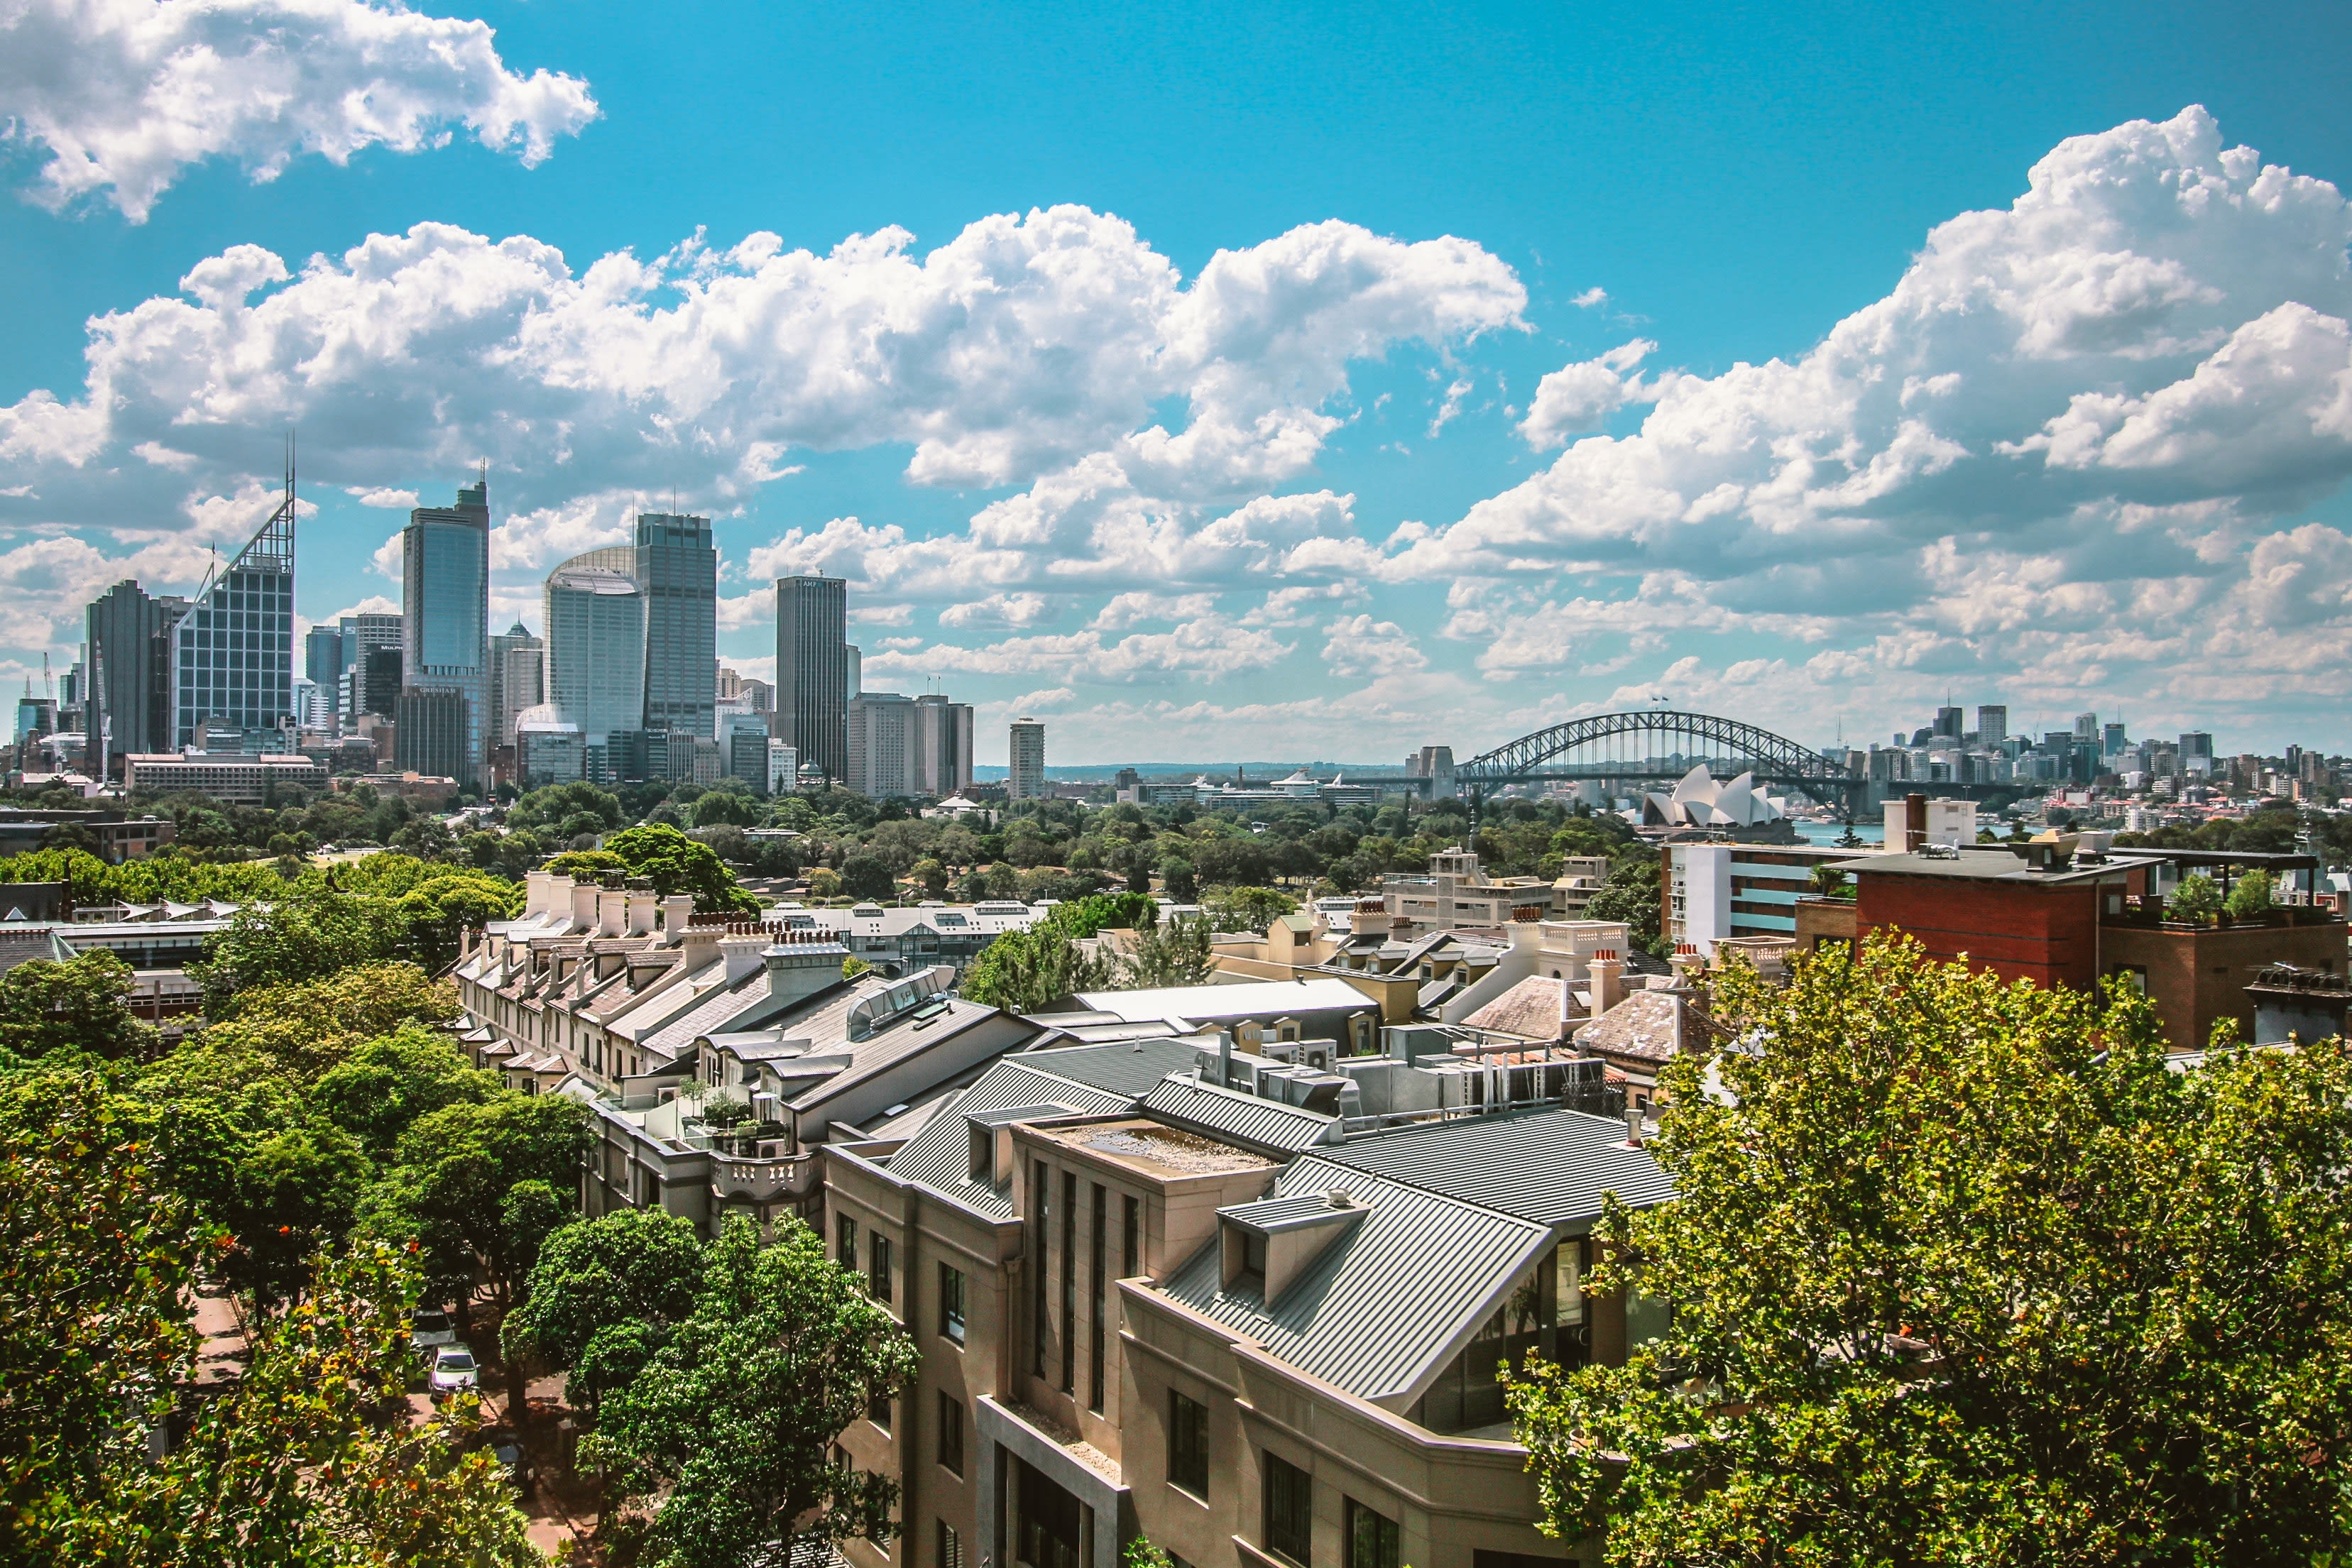 Sydney skyline with houses and trees in the foreground